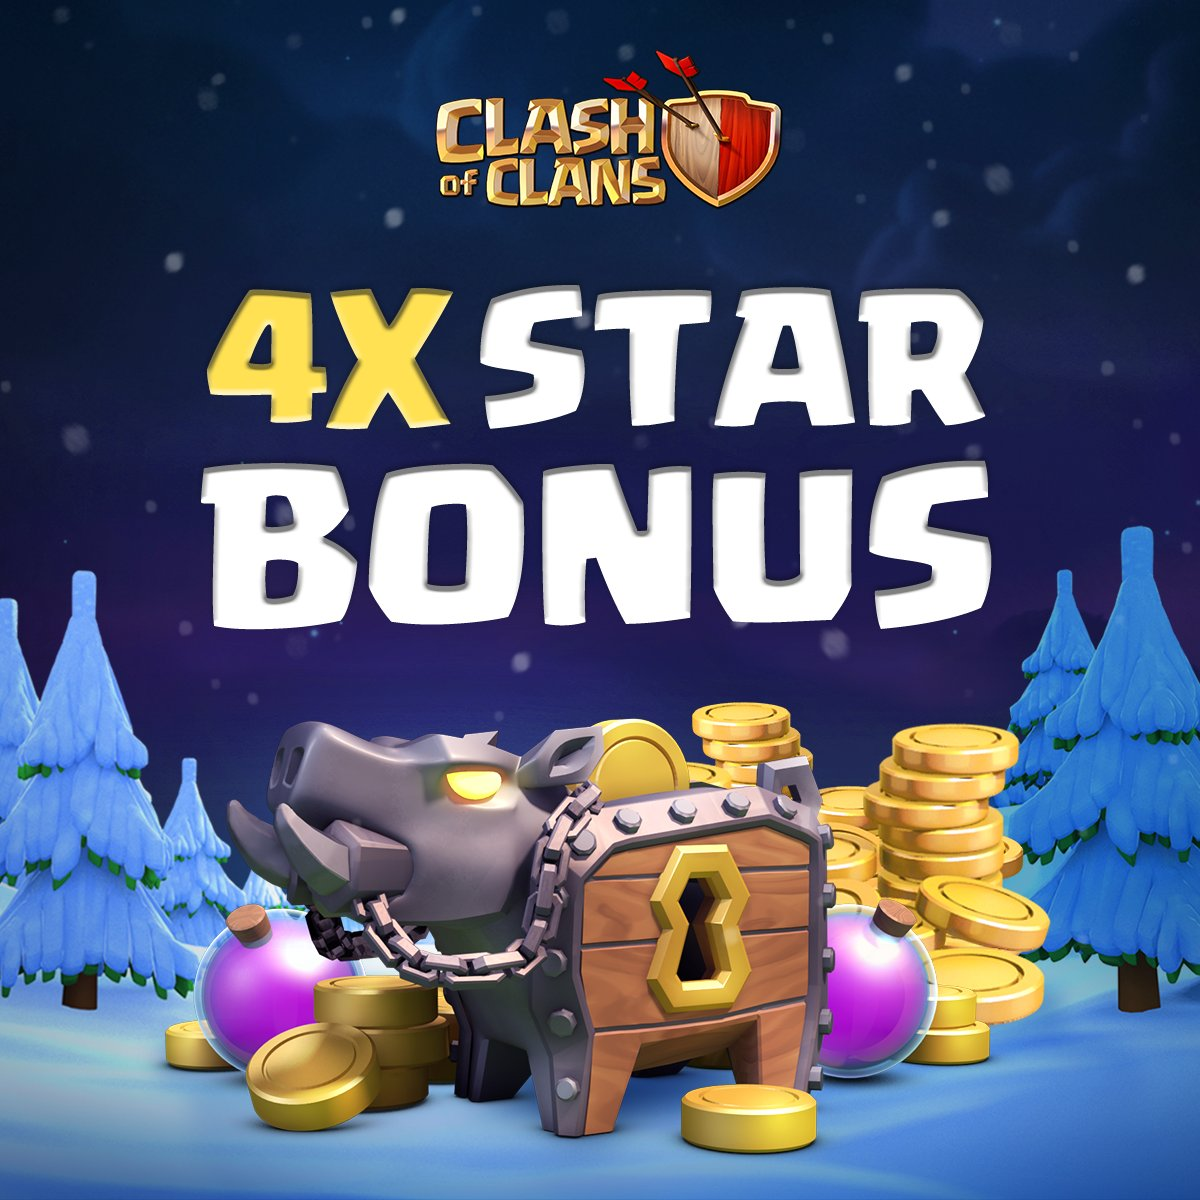 clash of clans clashofclans twitter